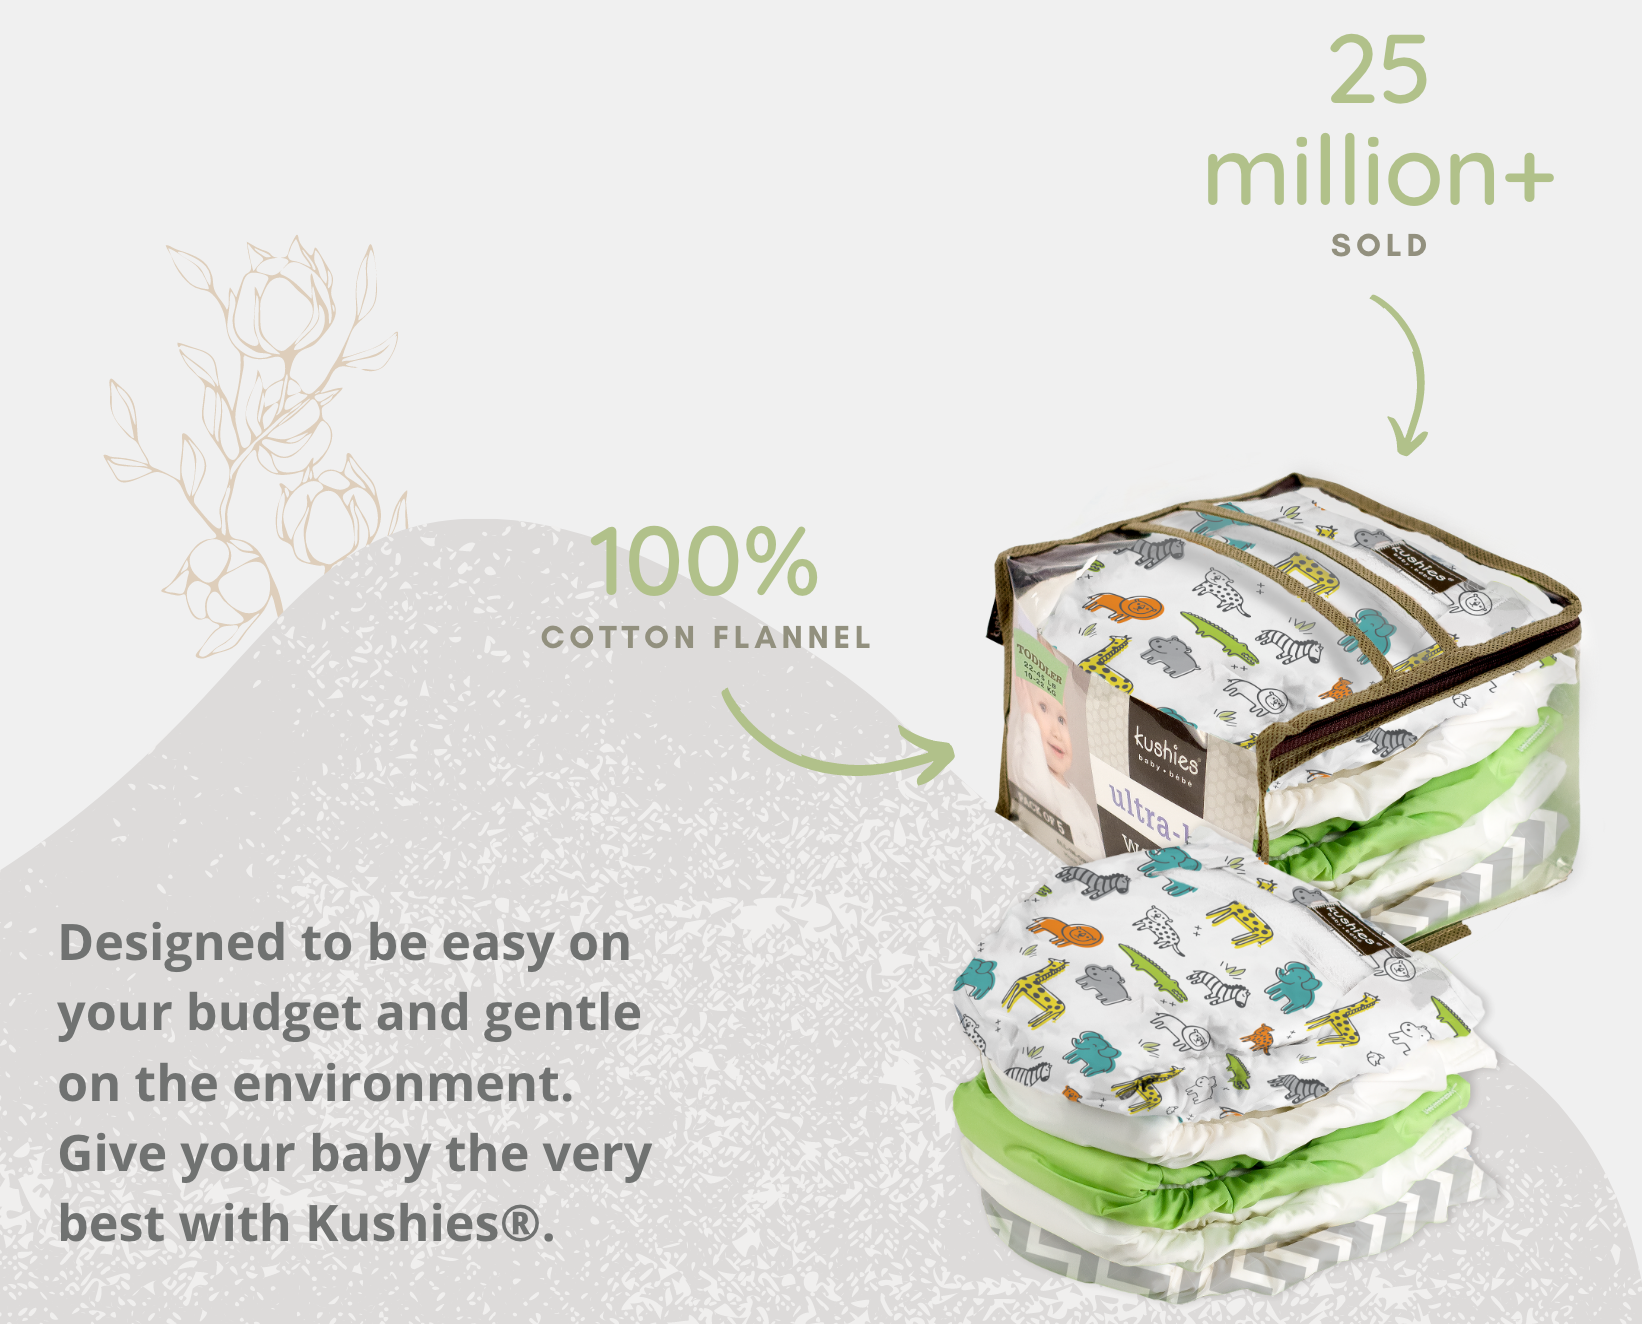 designed to be easy on your budget and gentle on the environment